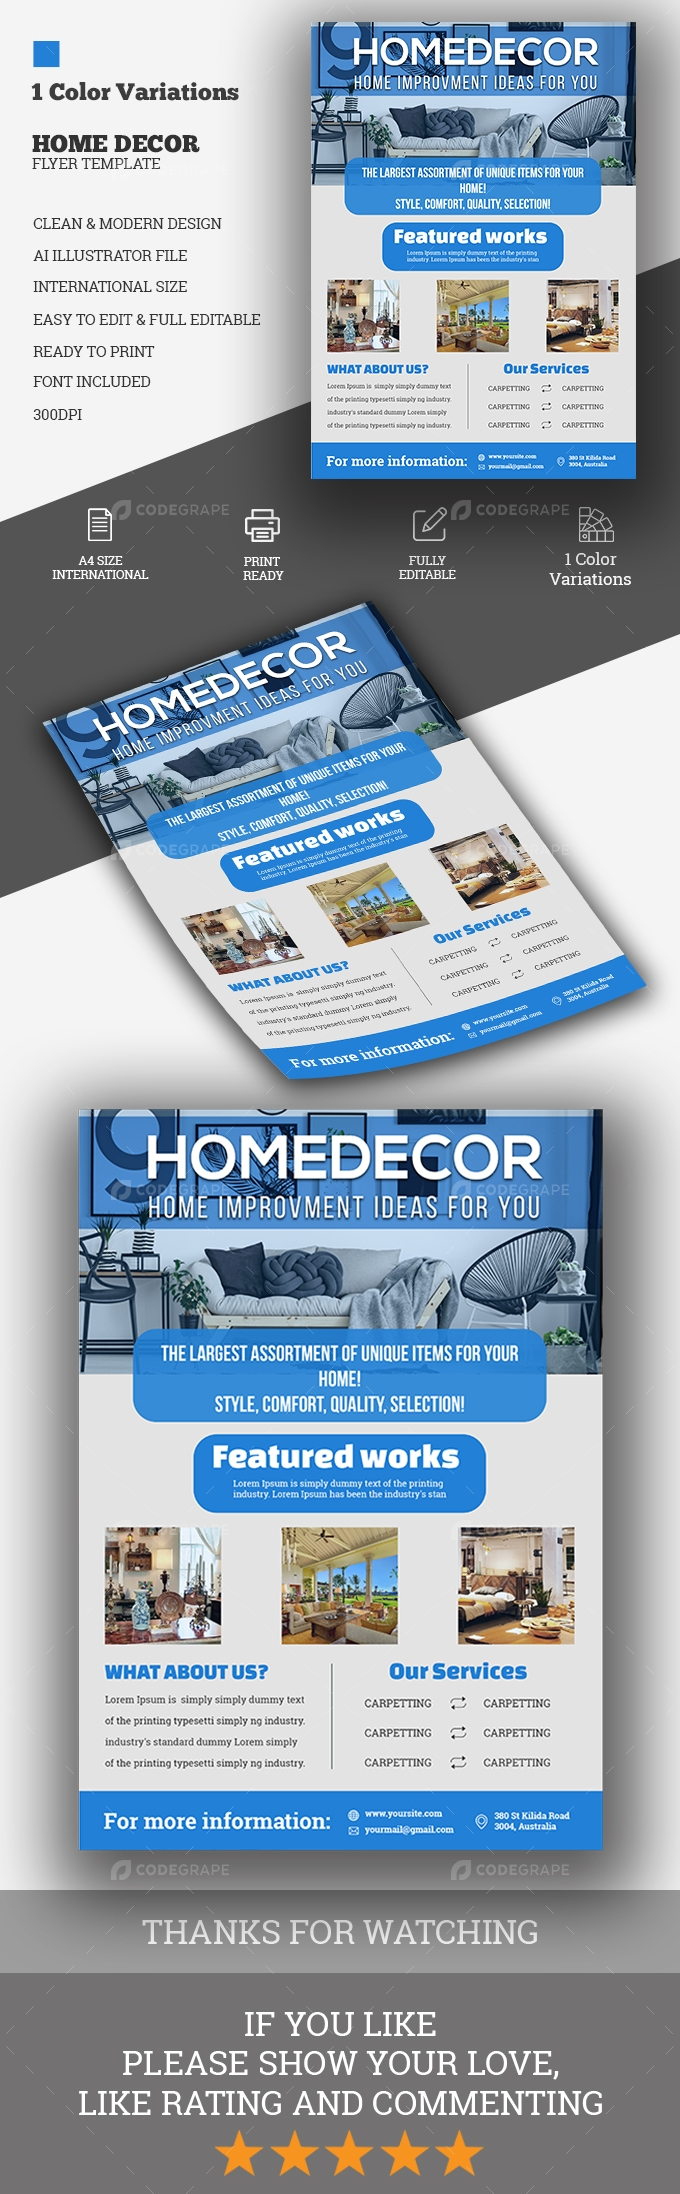 Home Decor Flyer Template